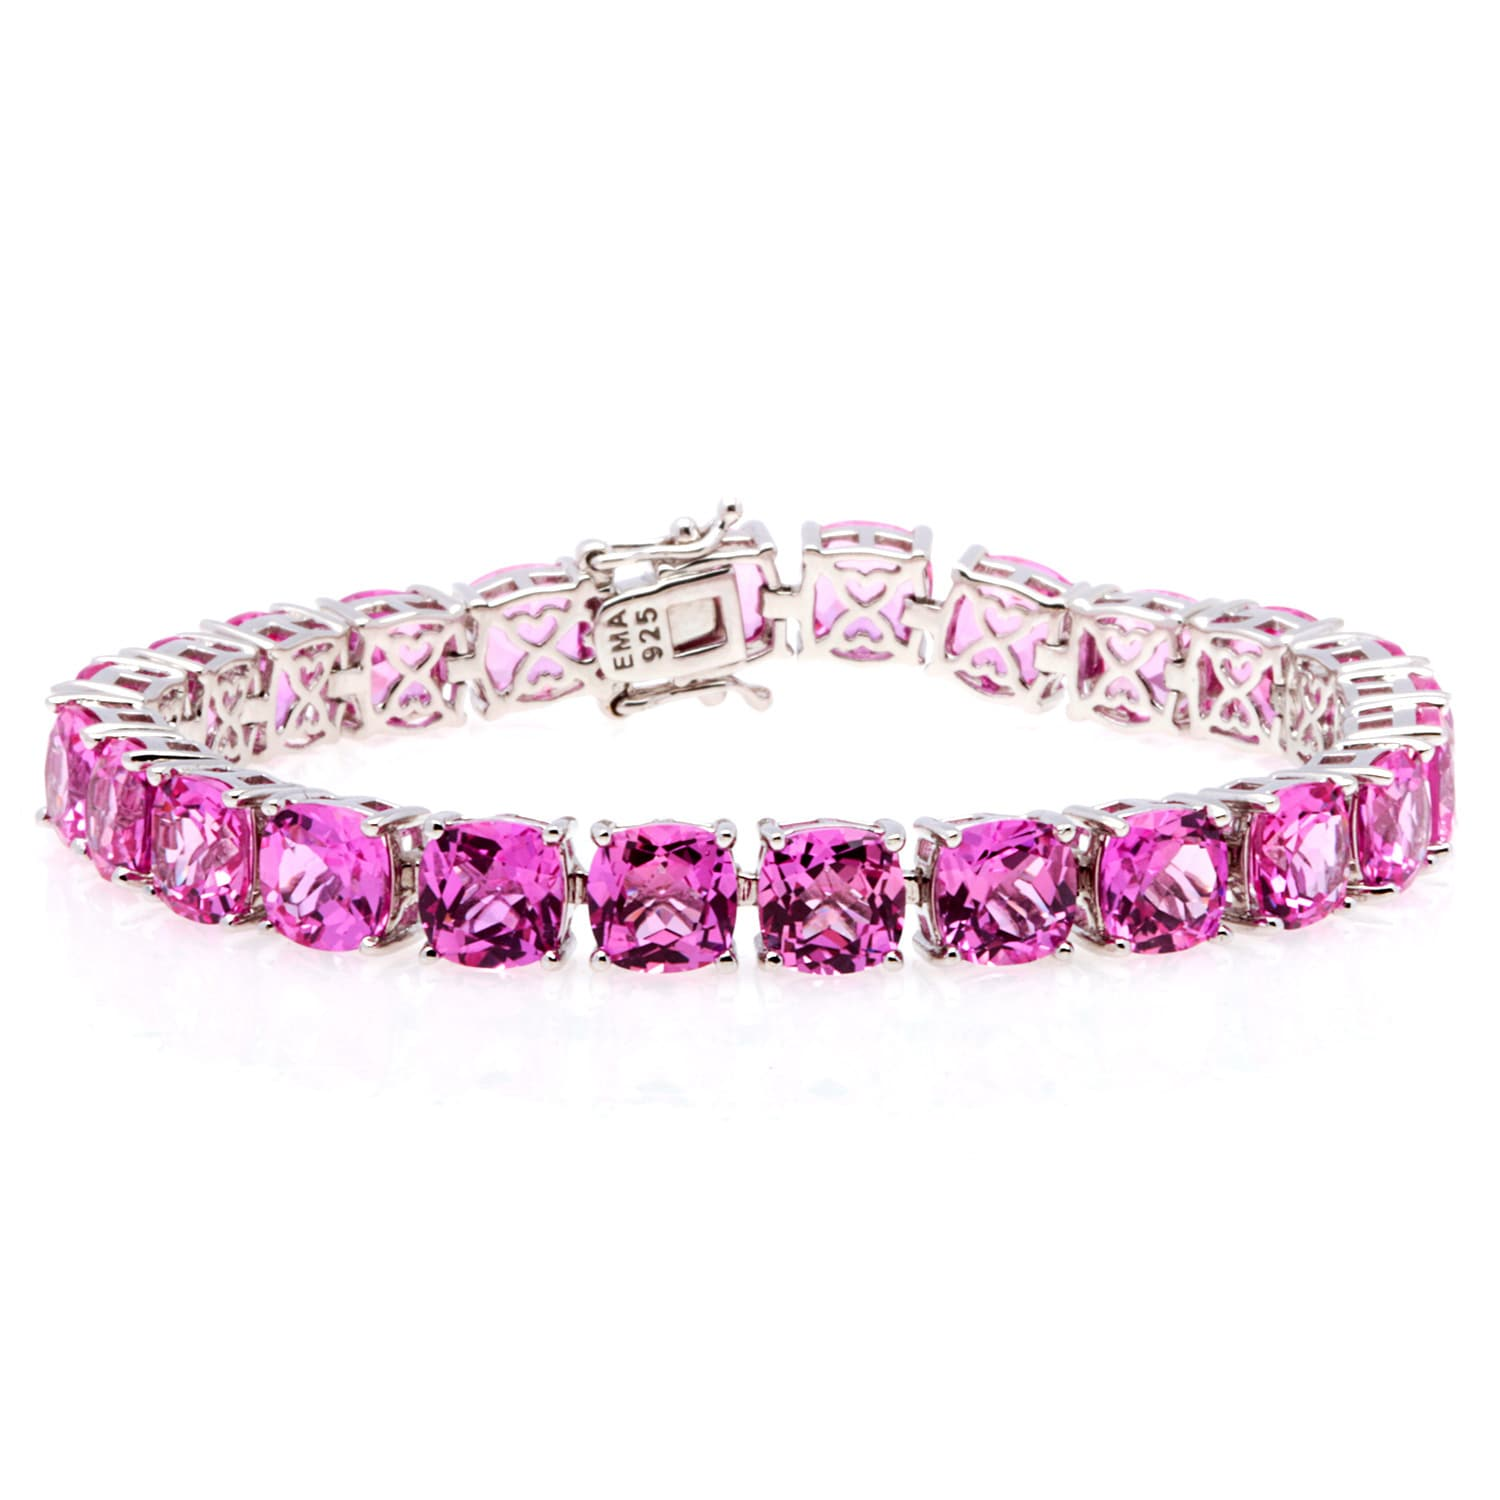 classic gallery station jewelry product chain normal sapphire lyst hardy bracelet silver slim pink john sterling